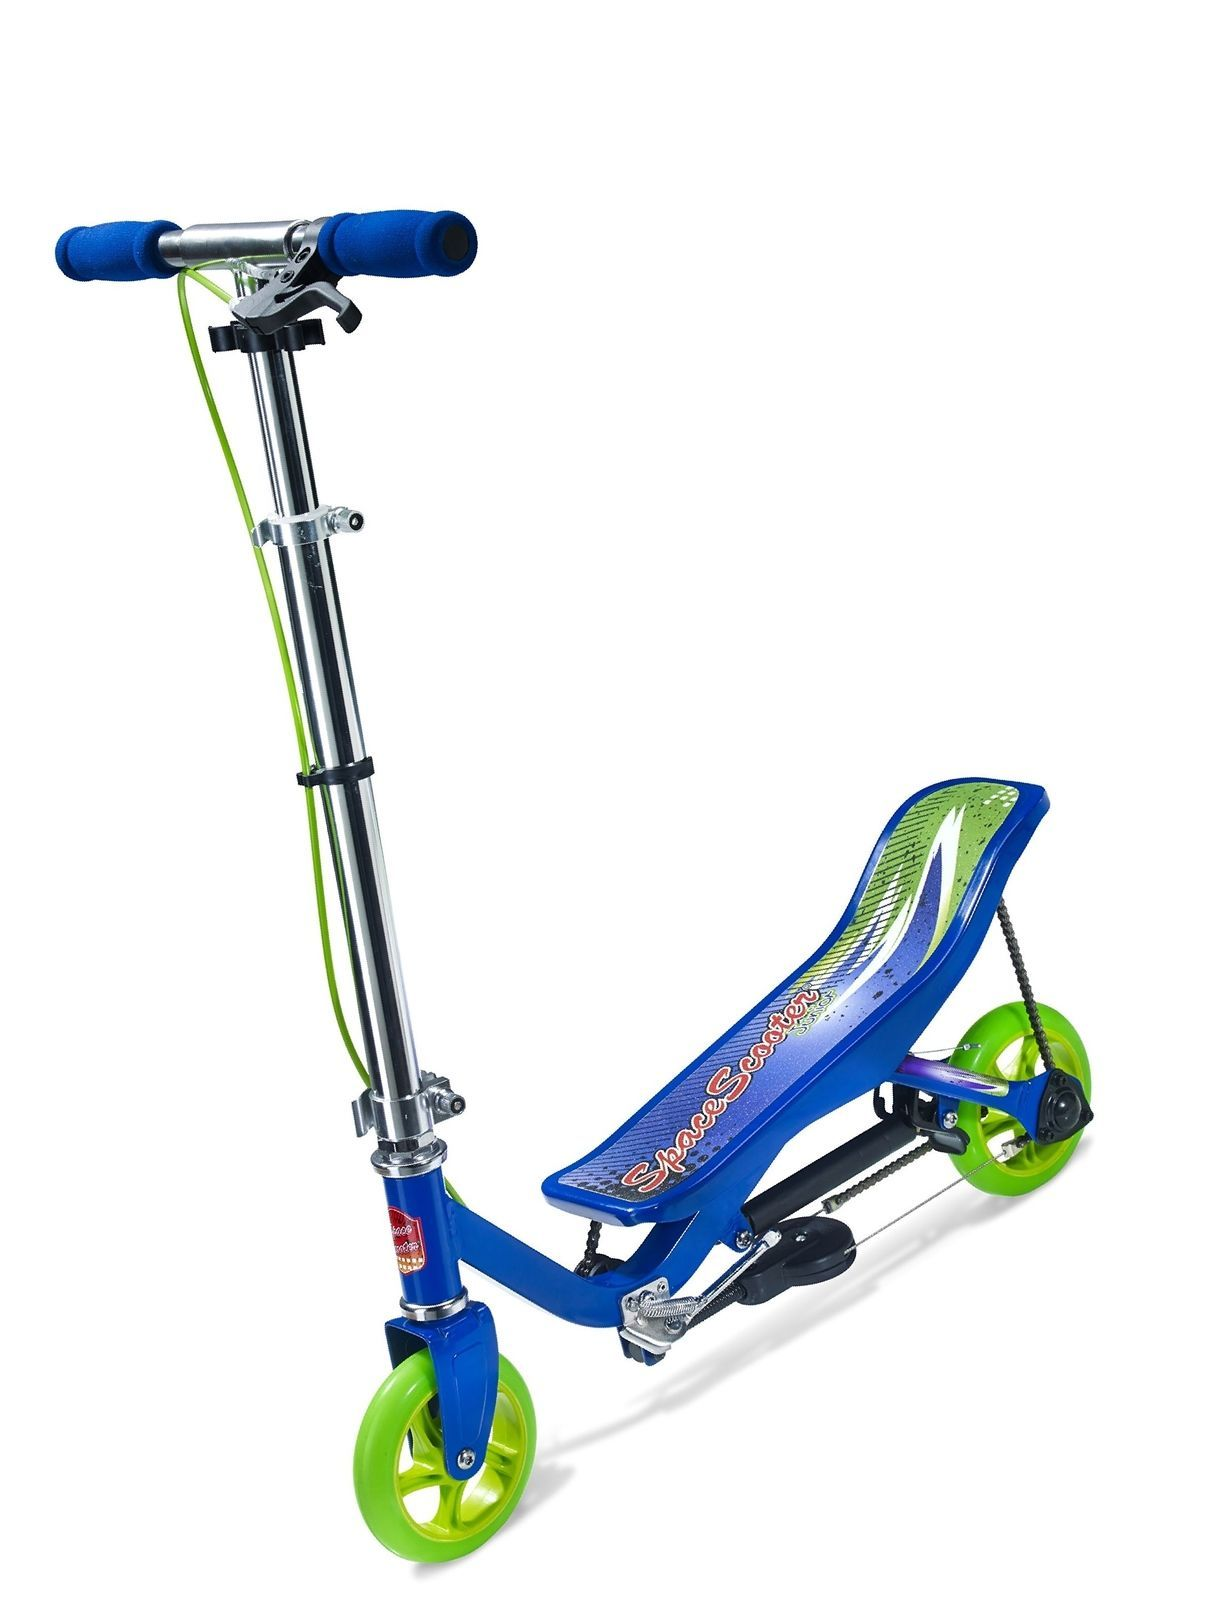 SpaceScooter Junior Ride On, Blue